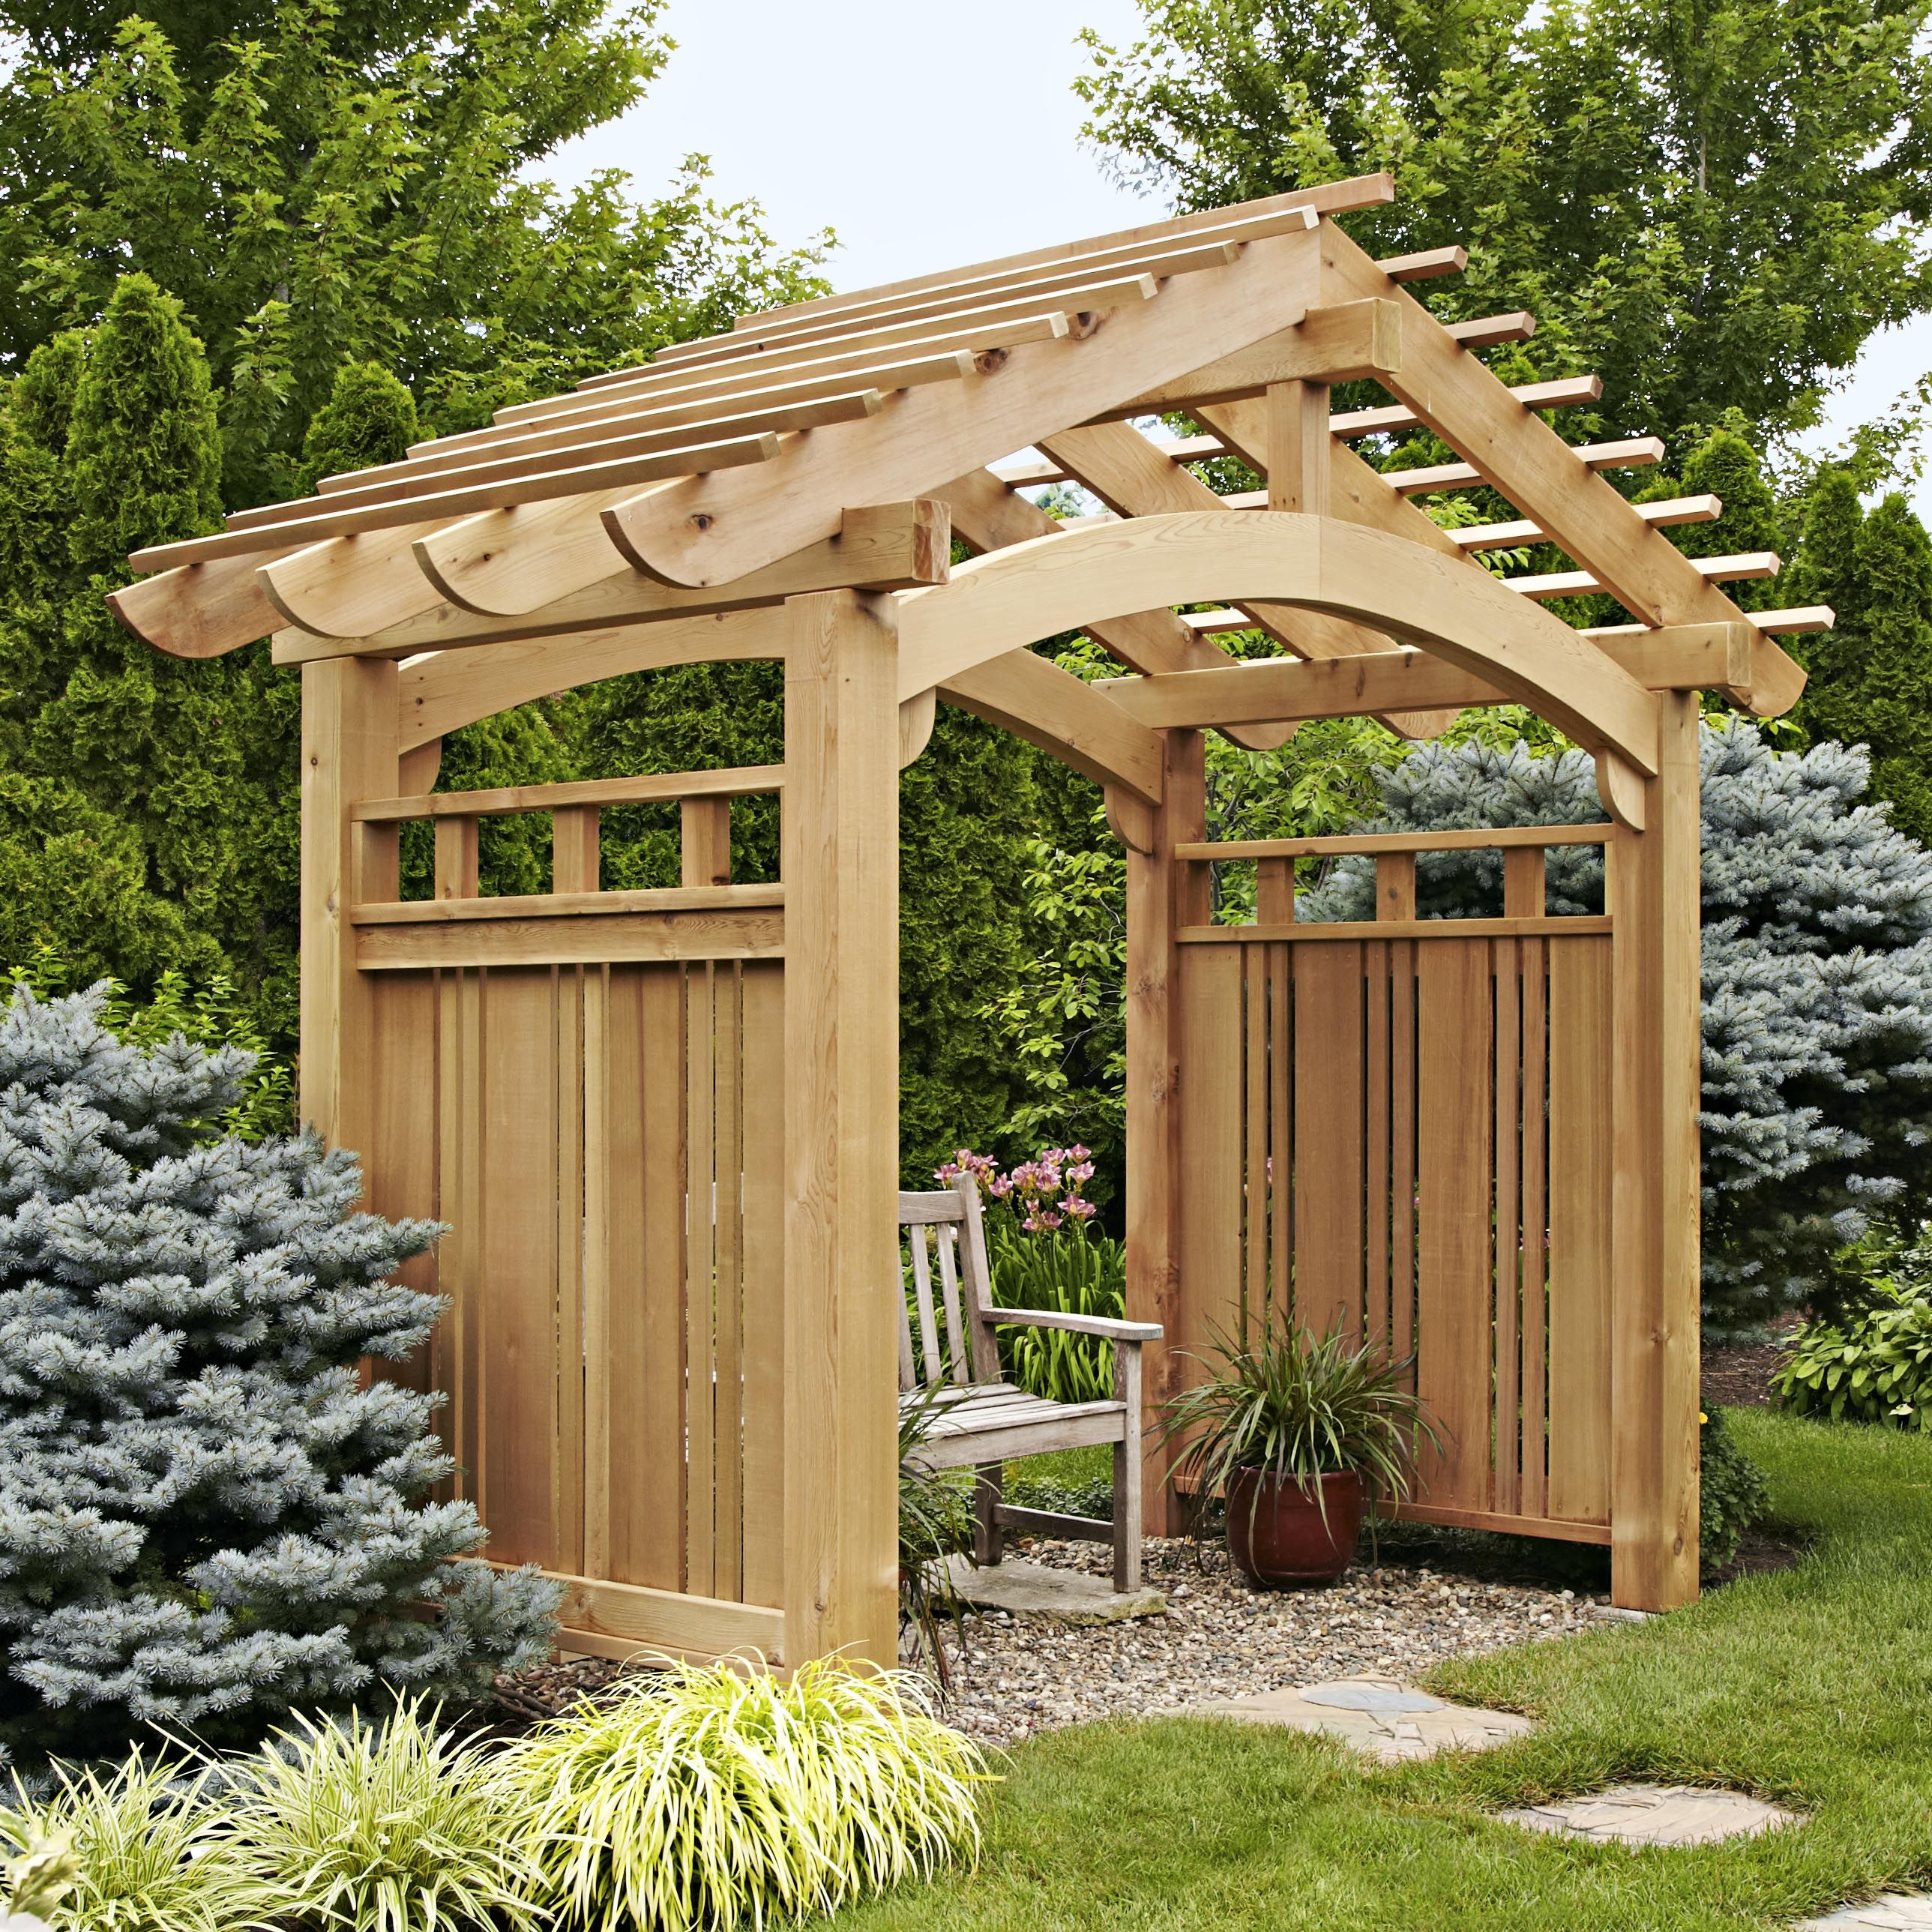 arching garden arbor woodworking plan outdoor backyard structures gardening pinterest. Black Bedroom Furniture Sets. Home Design Ideas